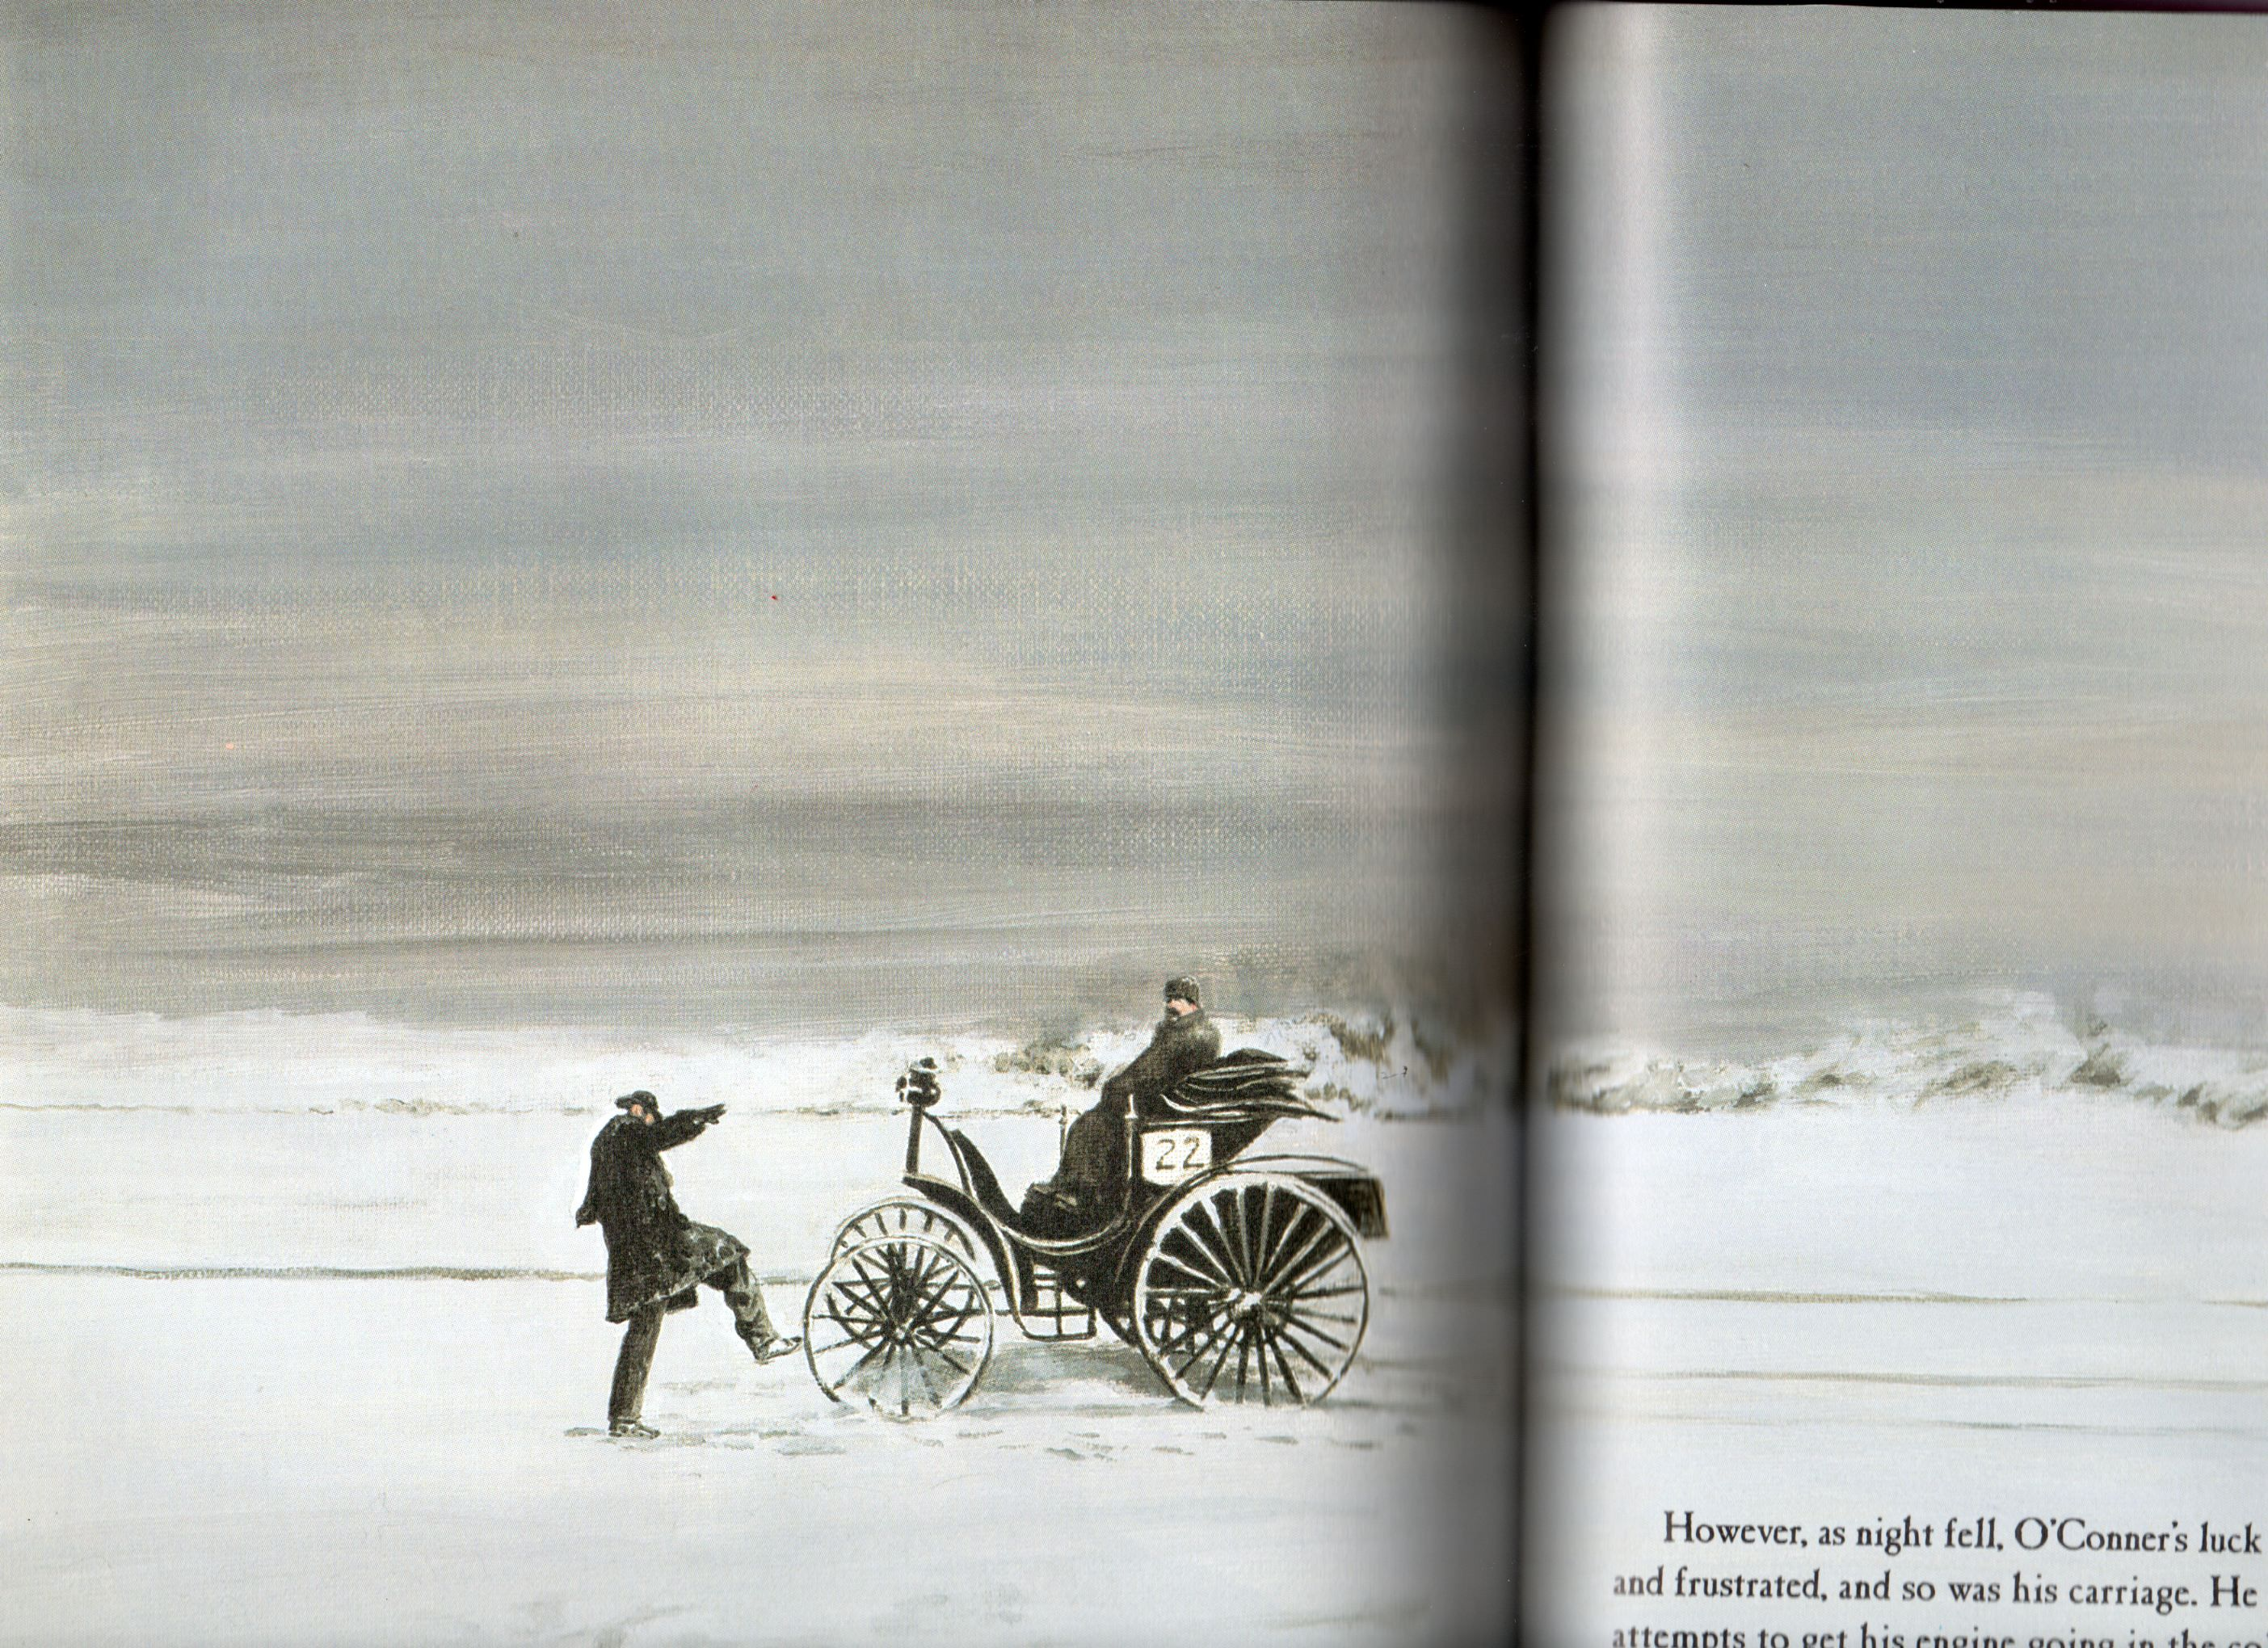 Had enough snow?  Frank Duryea in The Great Horseless Carriage Race certainly did. If your moving south then get going. If your staying in the South Jersey area consider realtors Patricia Dooling and Steven Dooling who were both named to South Jersey Magazine's Top Realtor's List. http://www.doolinggroup.com/NJ/